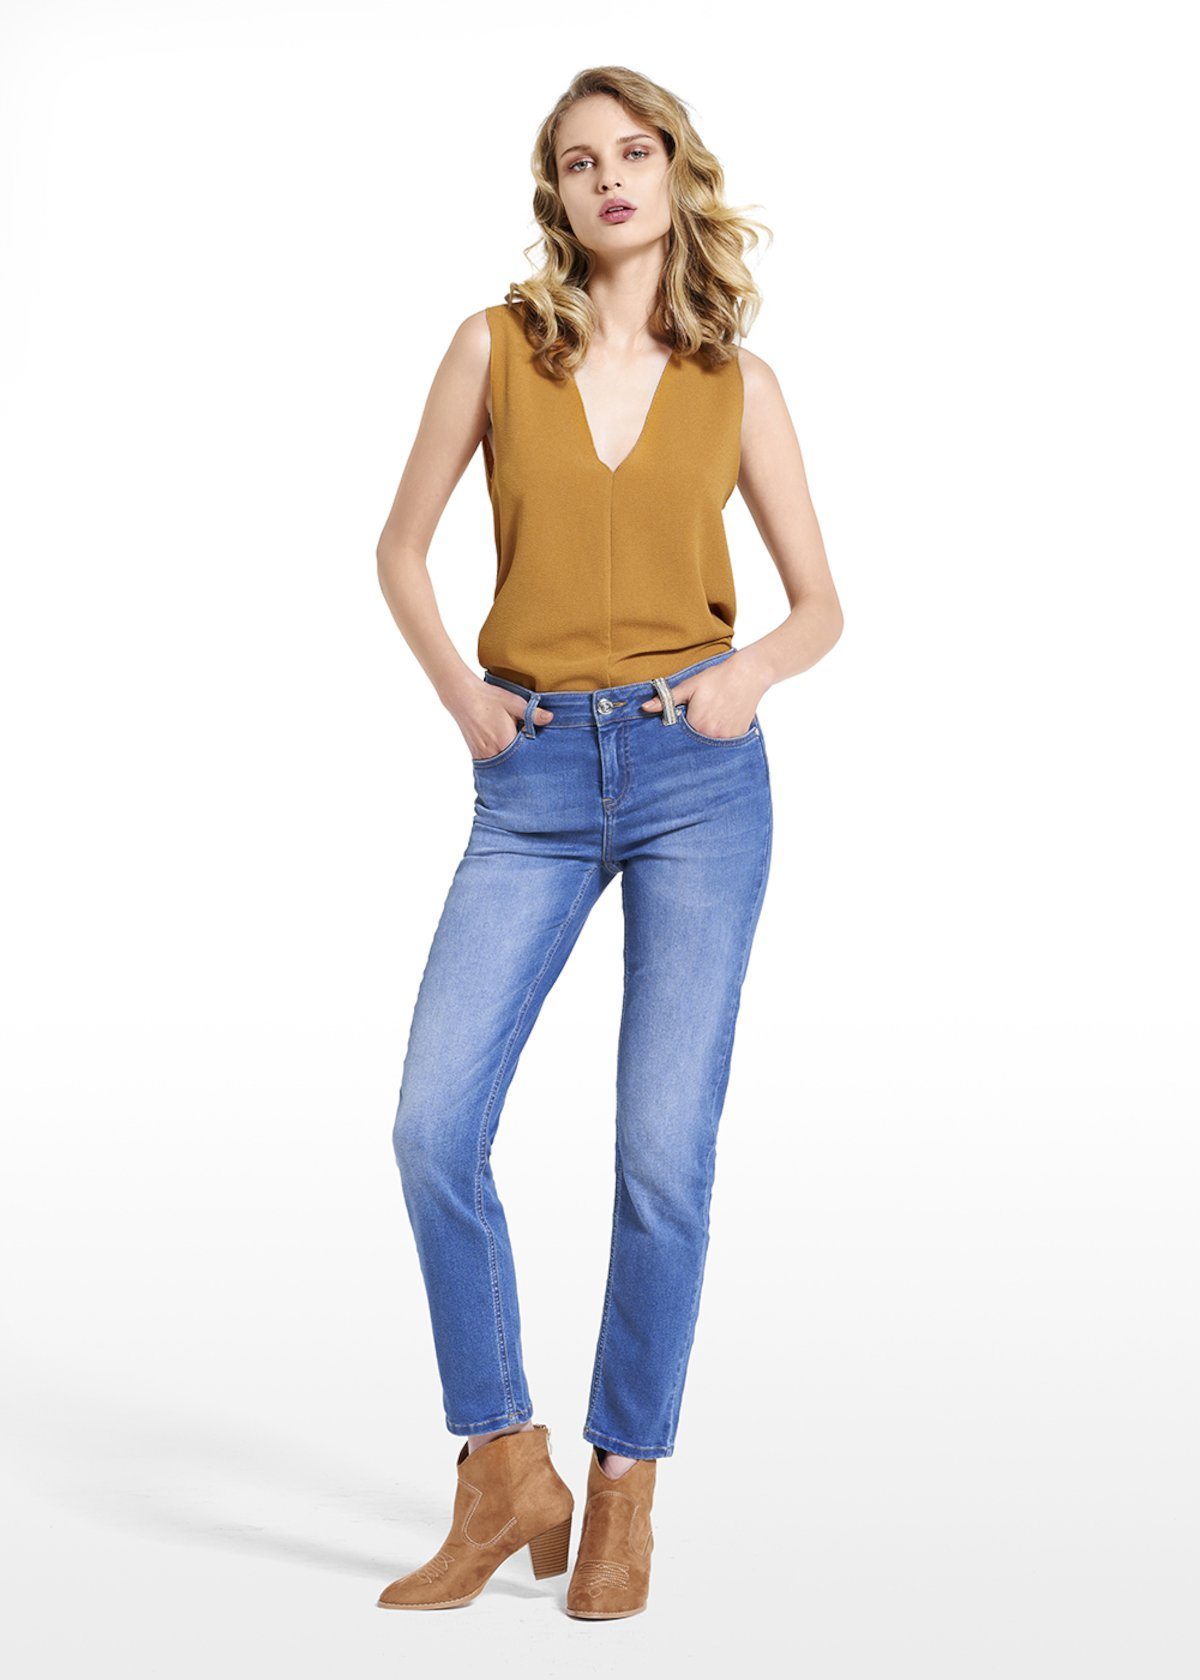 Jeans Donny con dettaglio lurex - Medium Denim - Donna - Immagine categoria